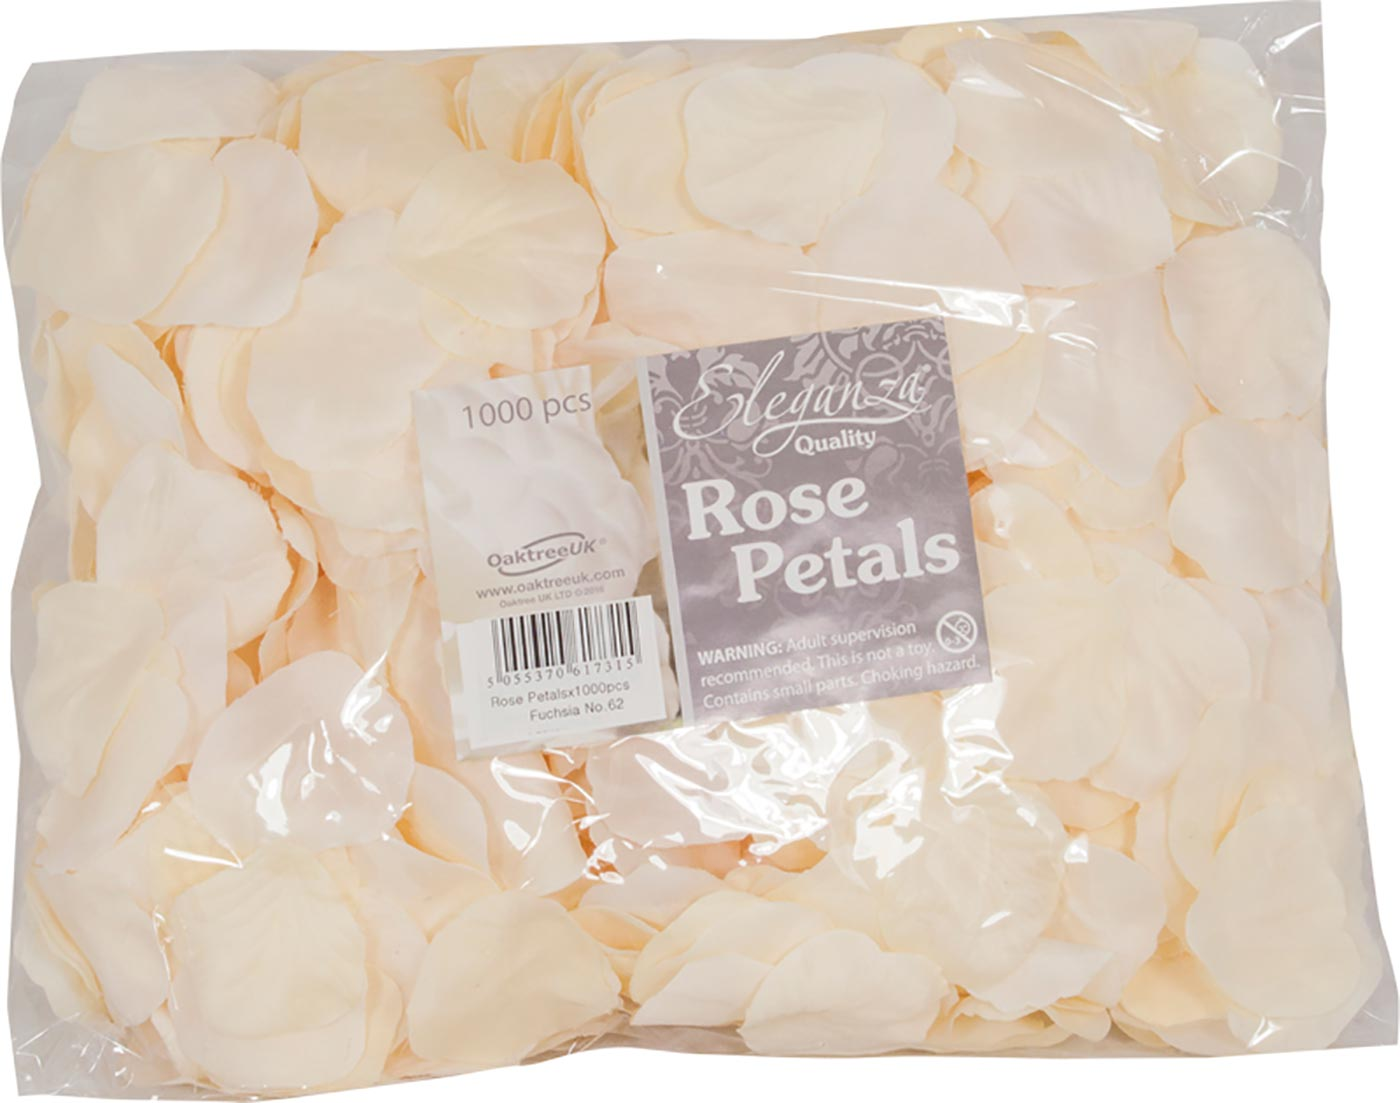 Eleganza Rose Petals x 1000pcs Cream